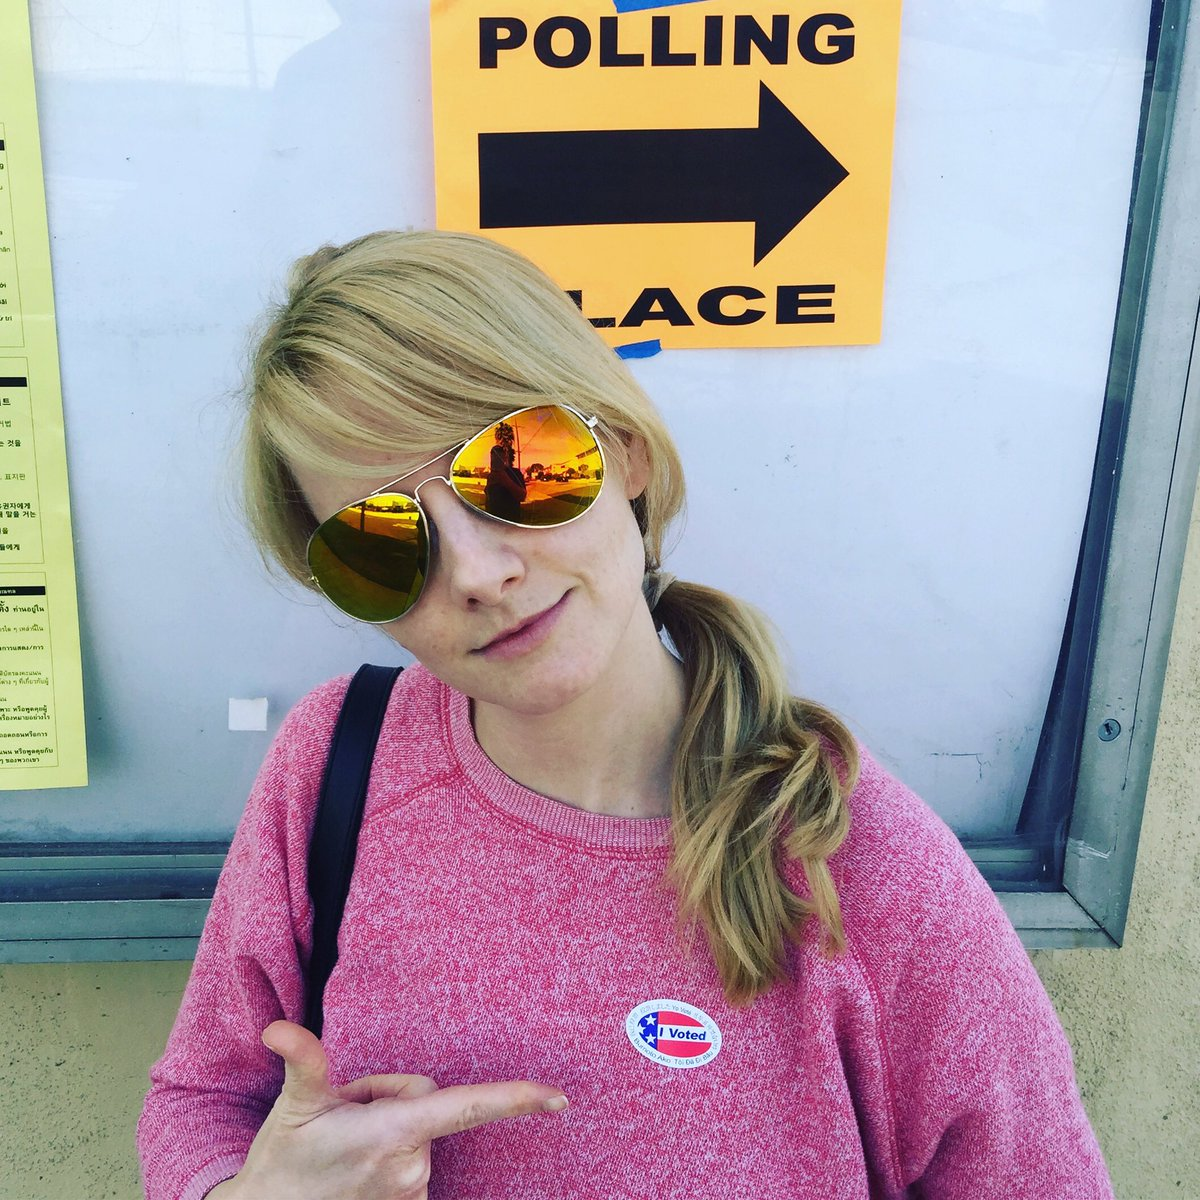 California! If you're eligible to vote today, get out there and rock it locally! ????????????????????????https://t.co/1b12ClDUwW https://t.co/jxY7EBkFgO